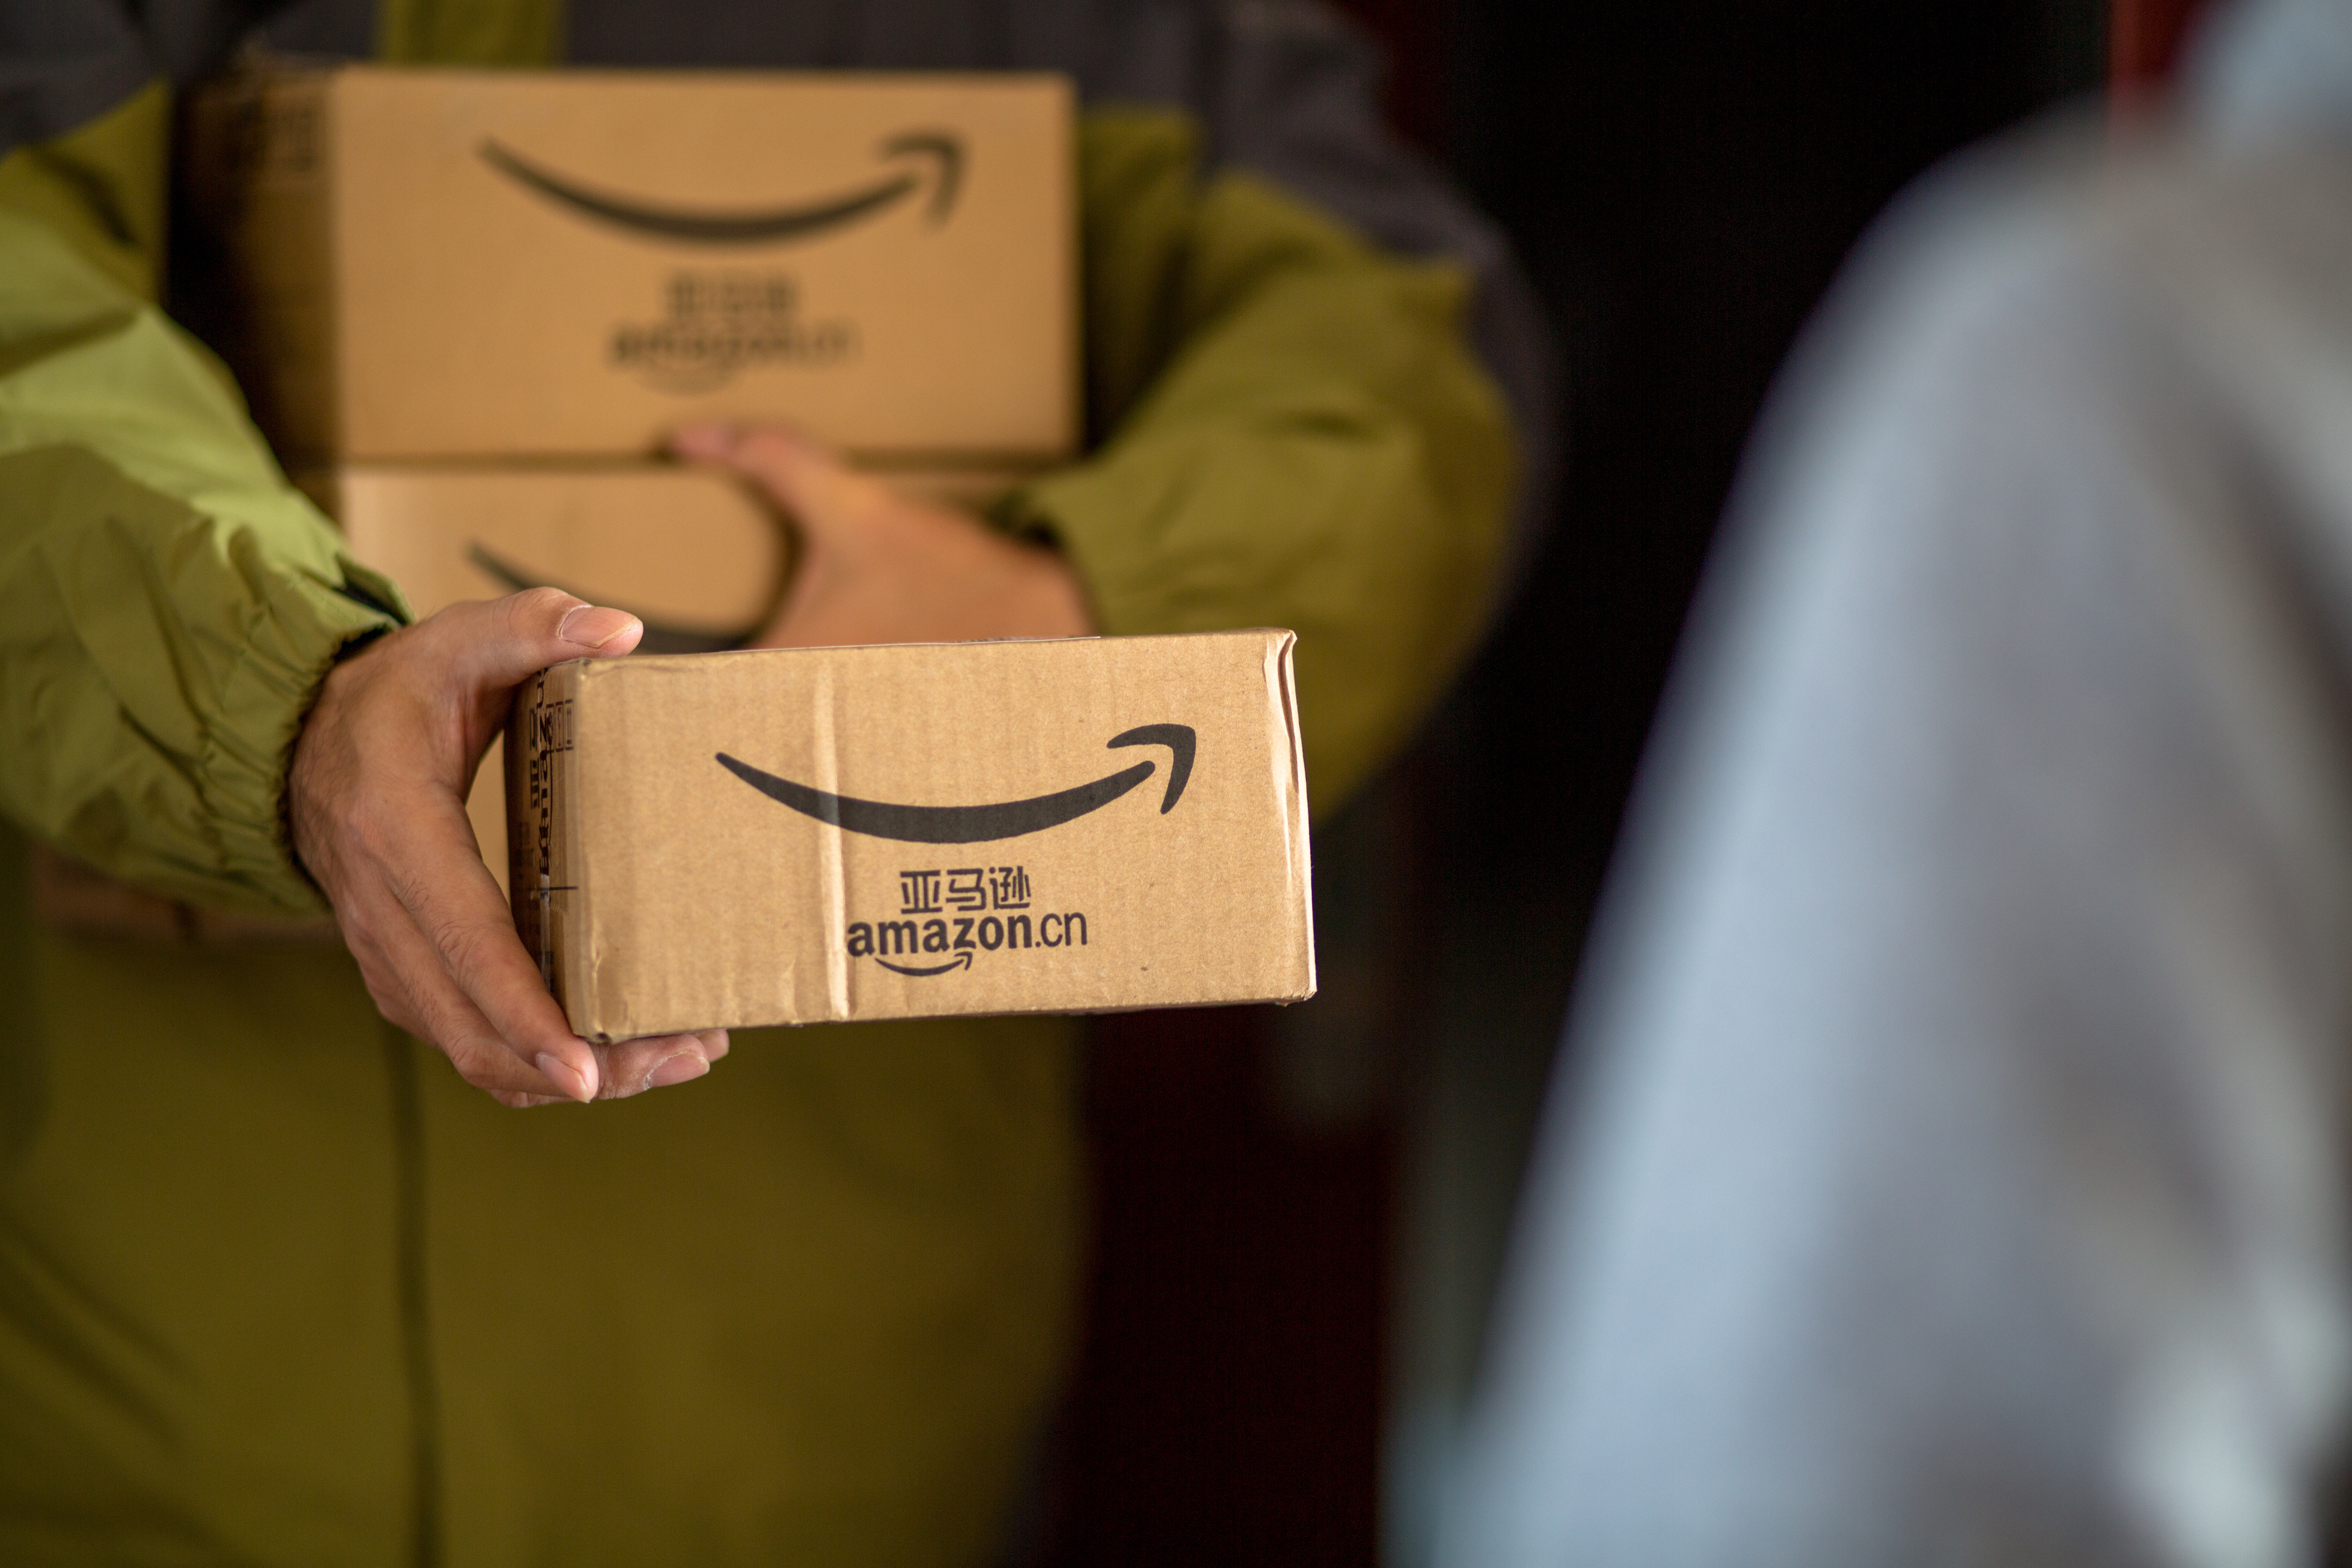 Amazon is expected to be a major factor behind the growth of e-commerce sales during the holiday season.